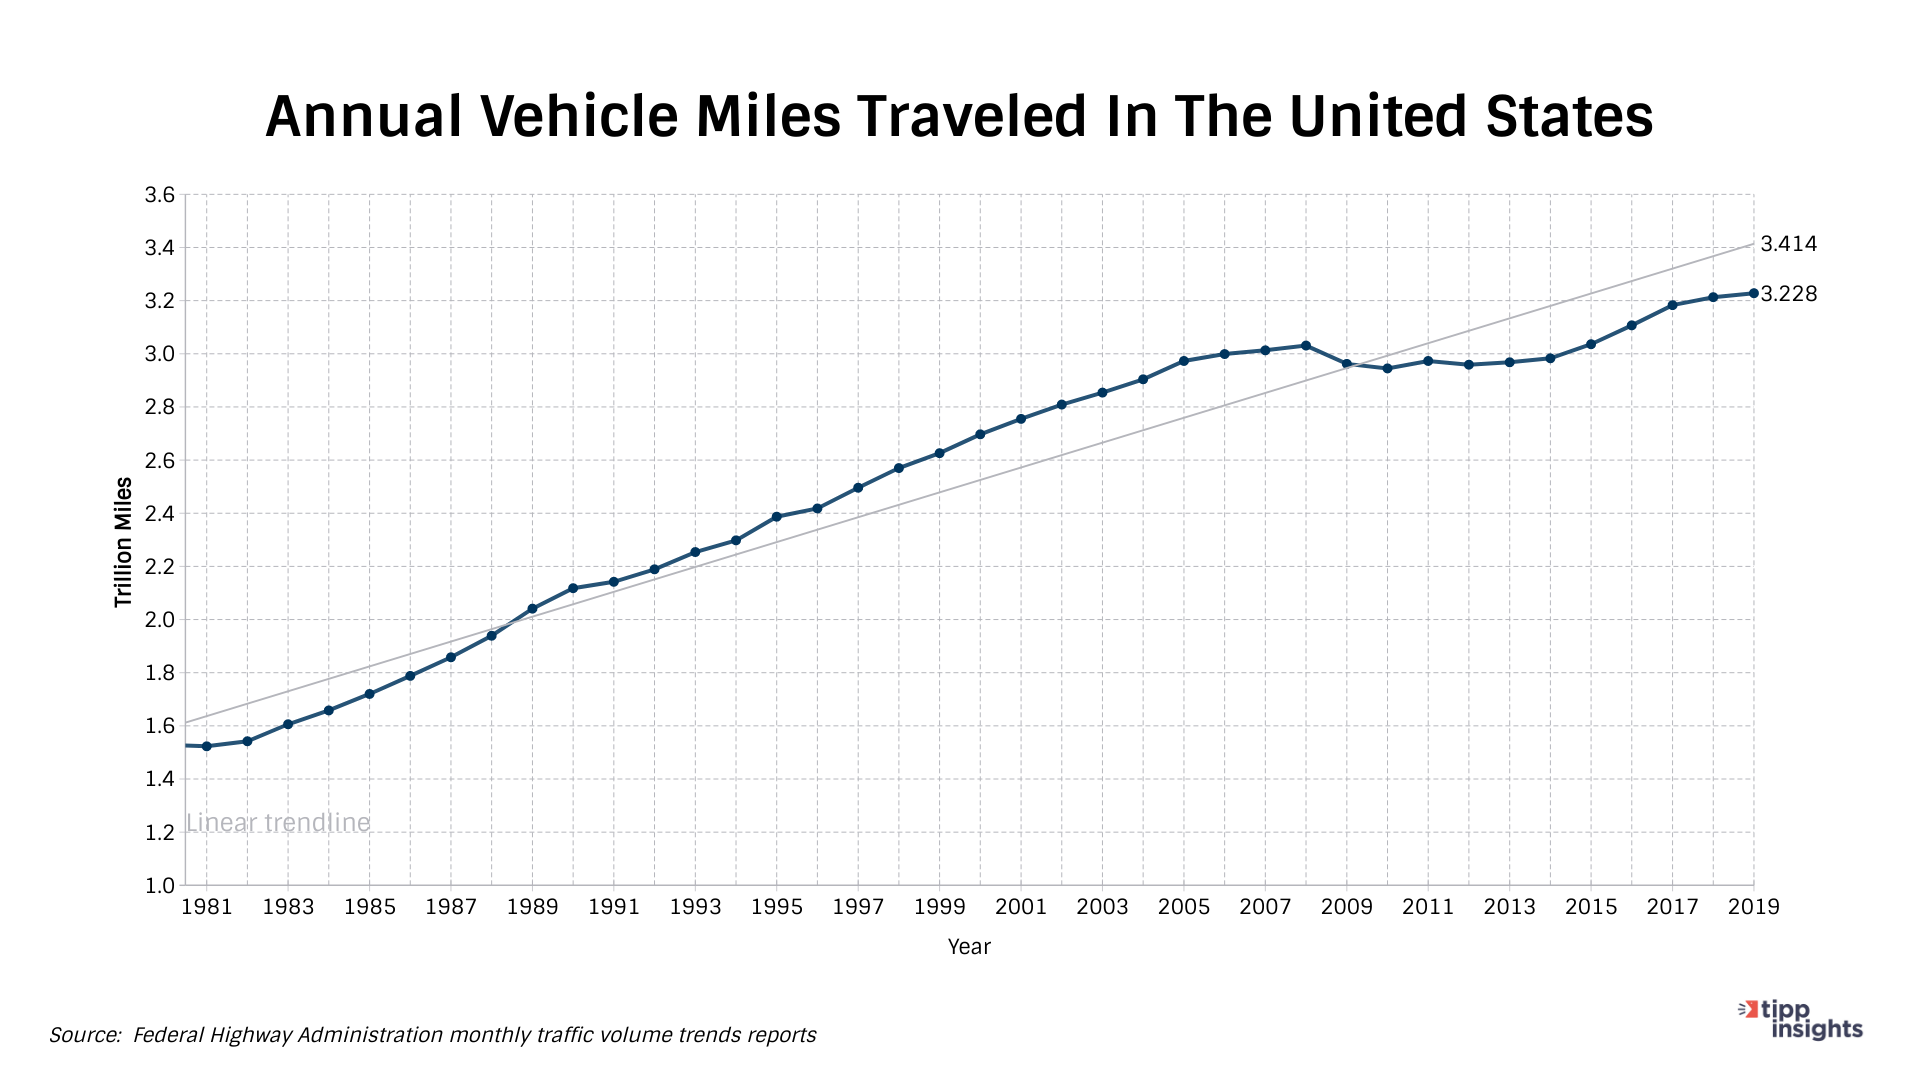 Annual Vehicle Miles Traveled In The United States